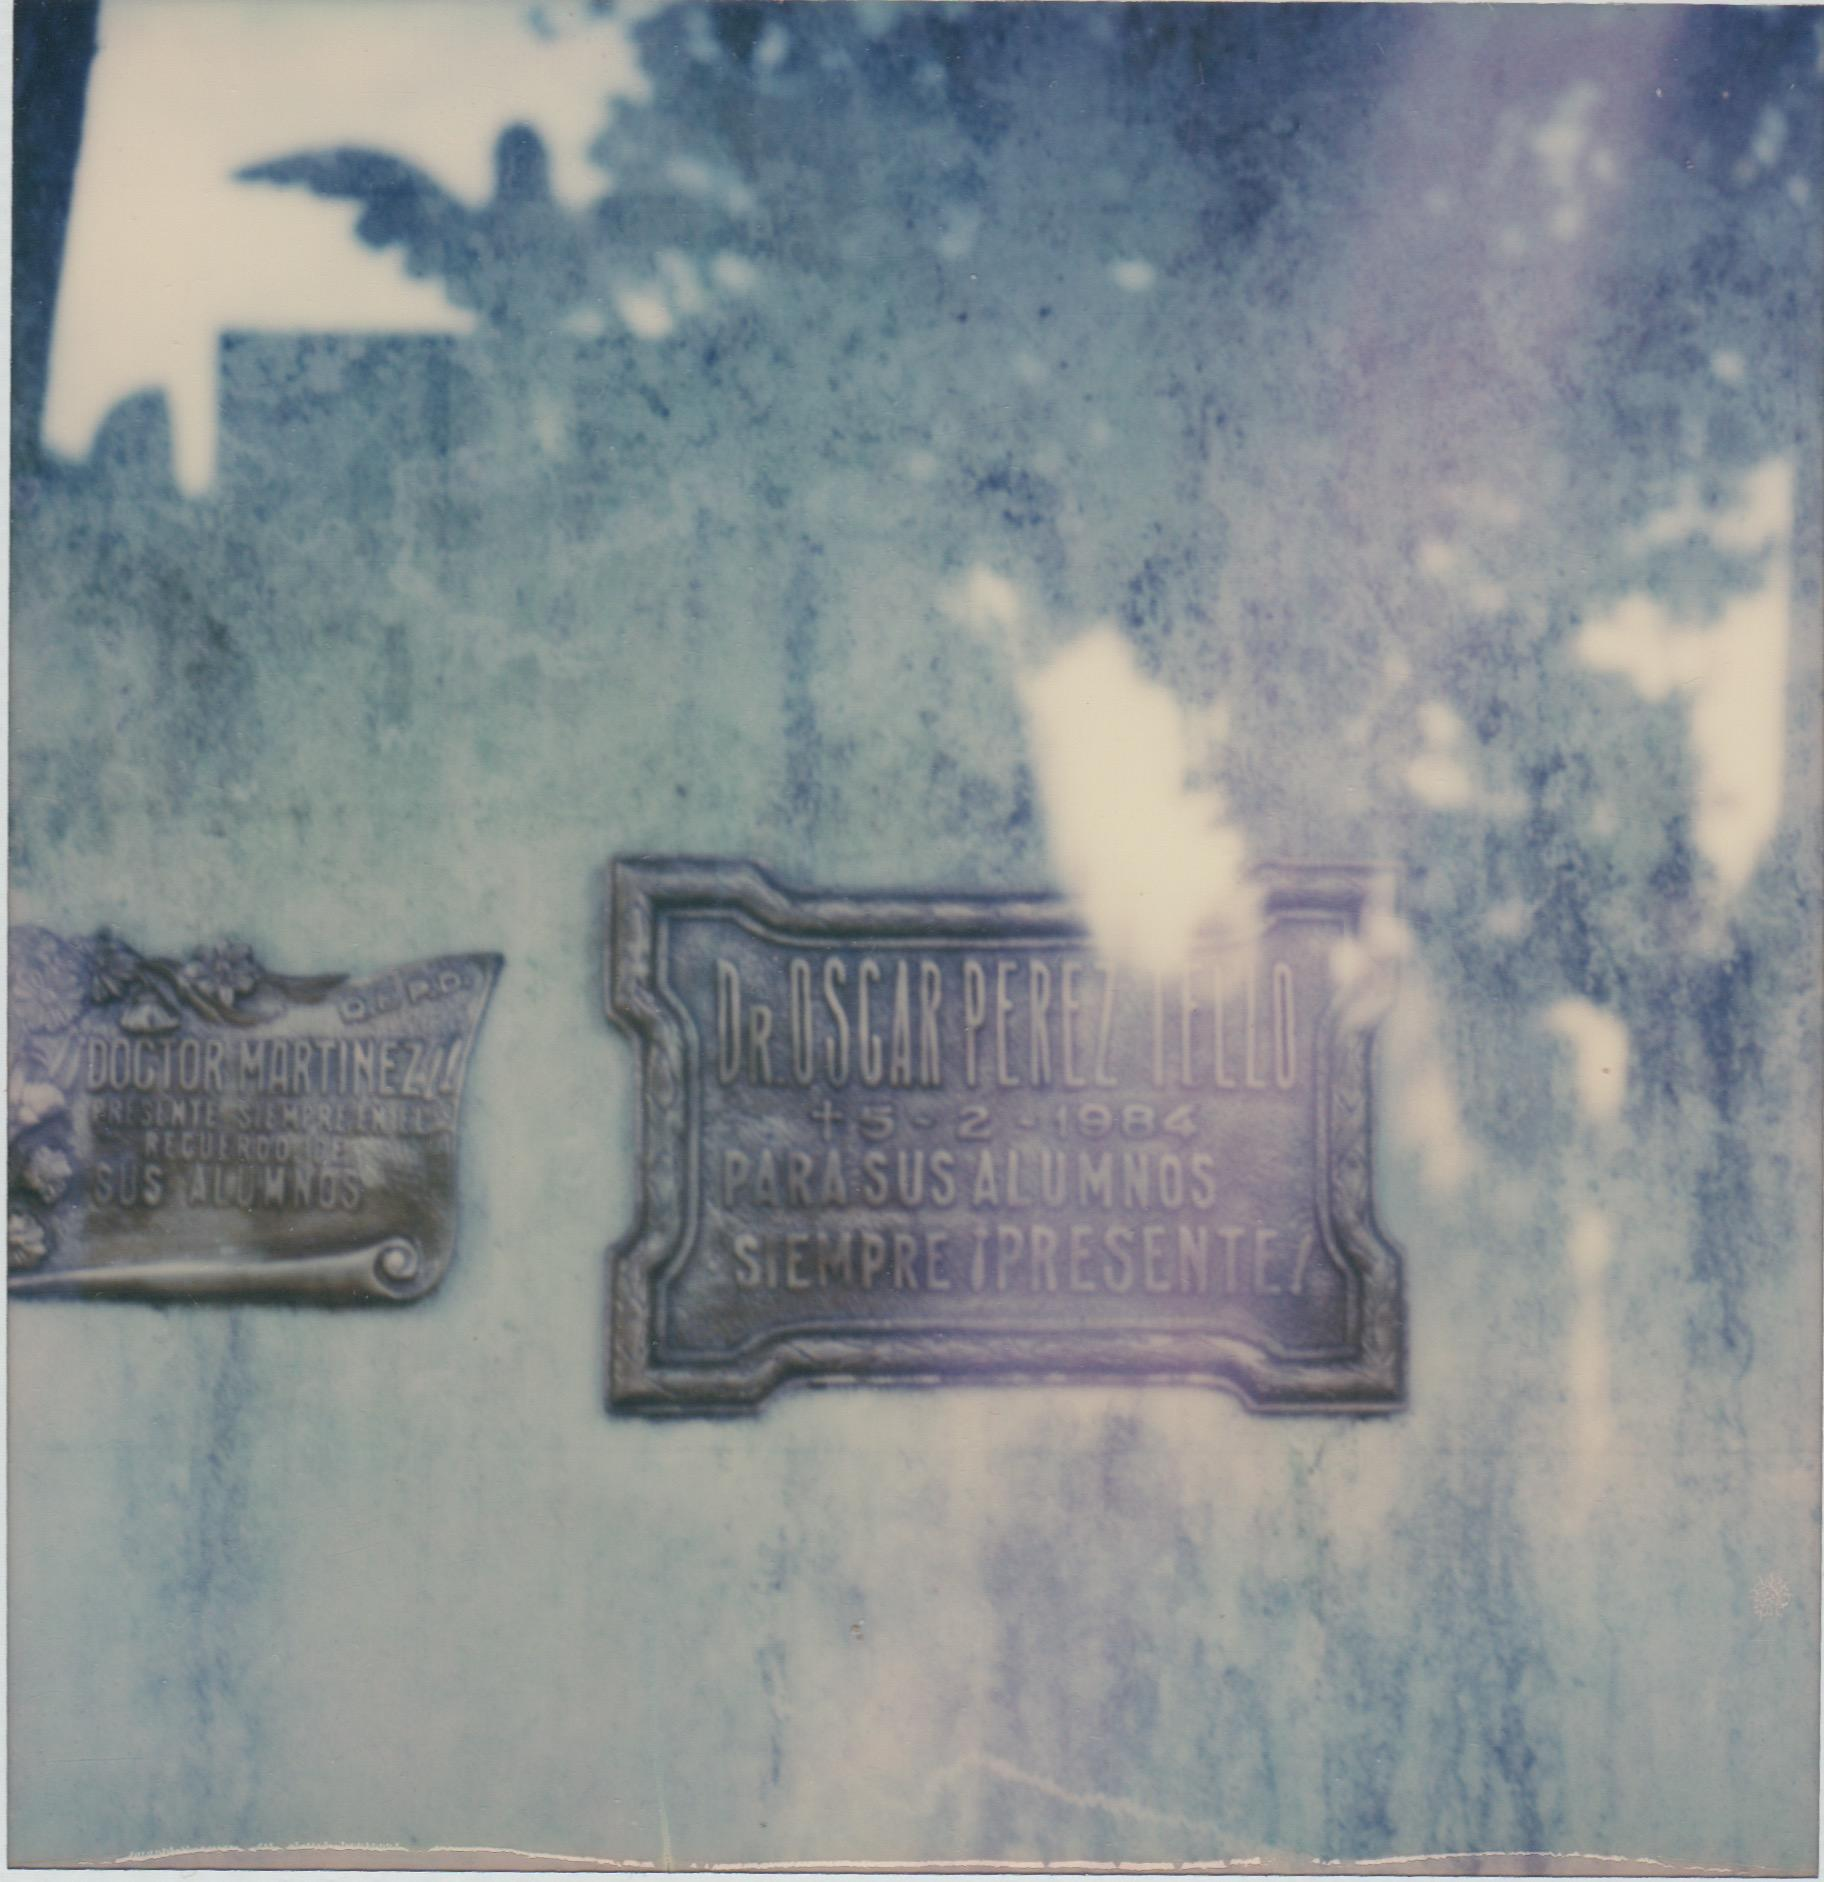 Buenos Aires - Still Life Cyanotype Style Film Photographic Print Framed